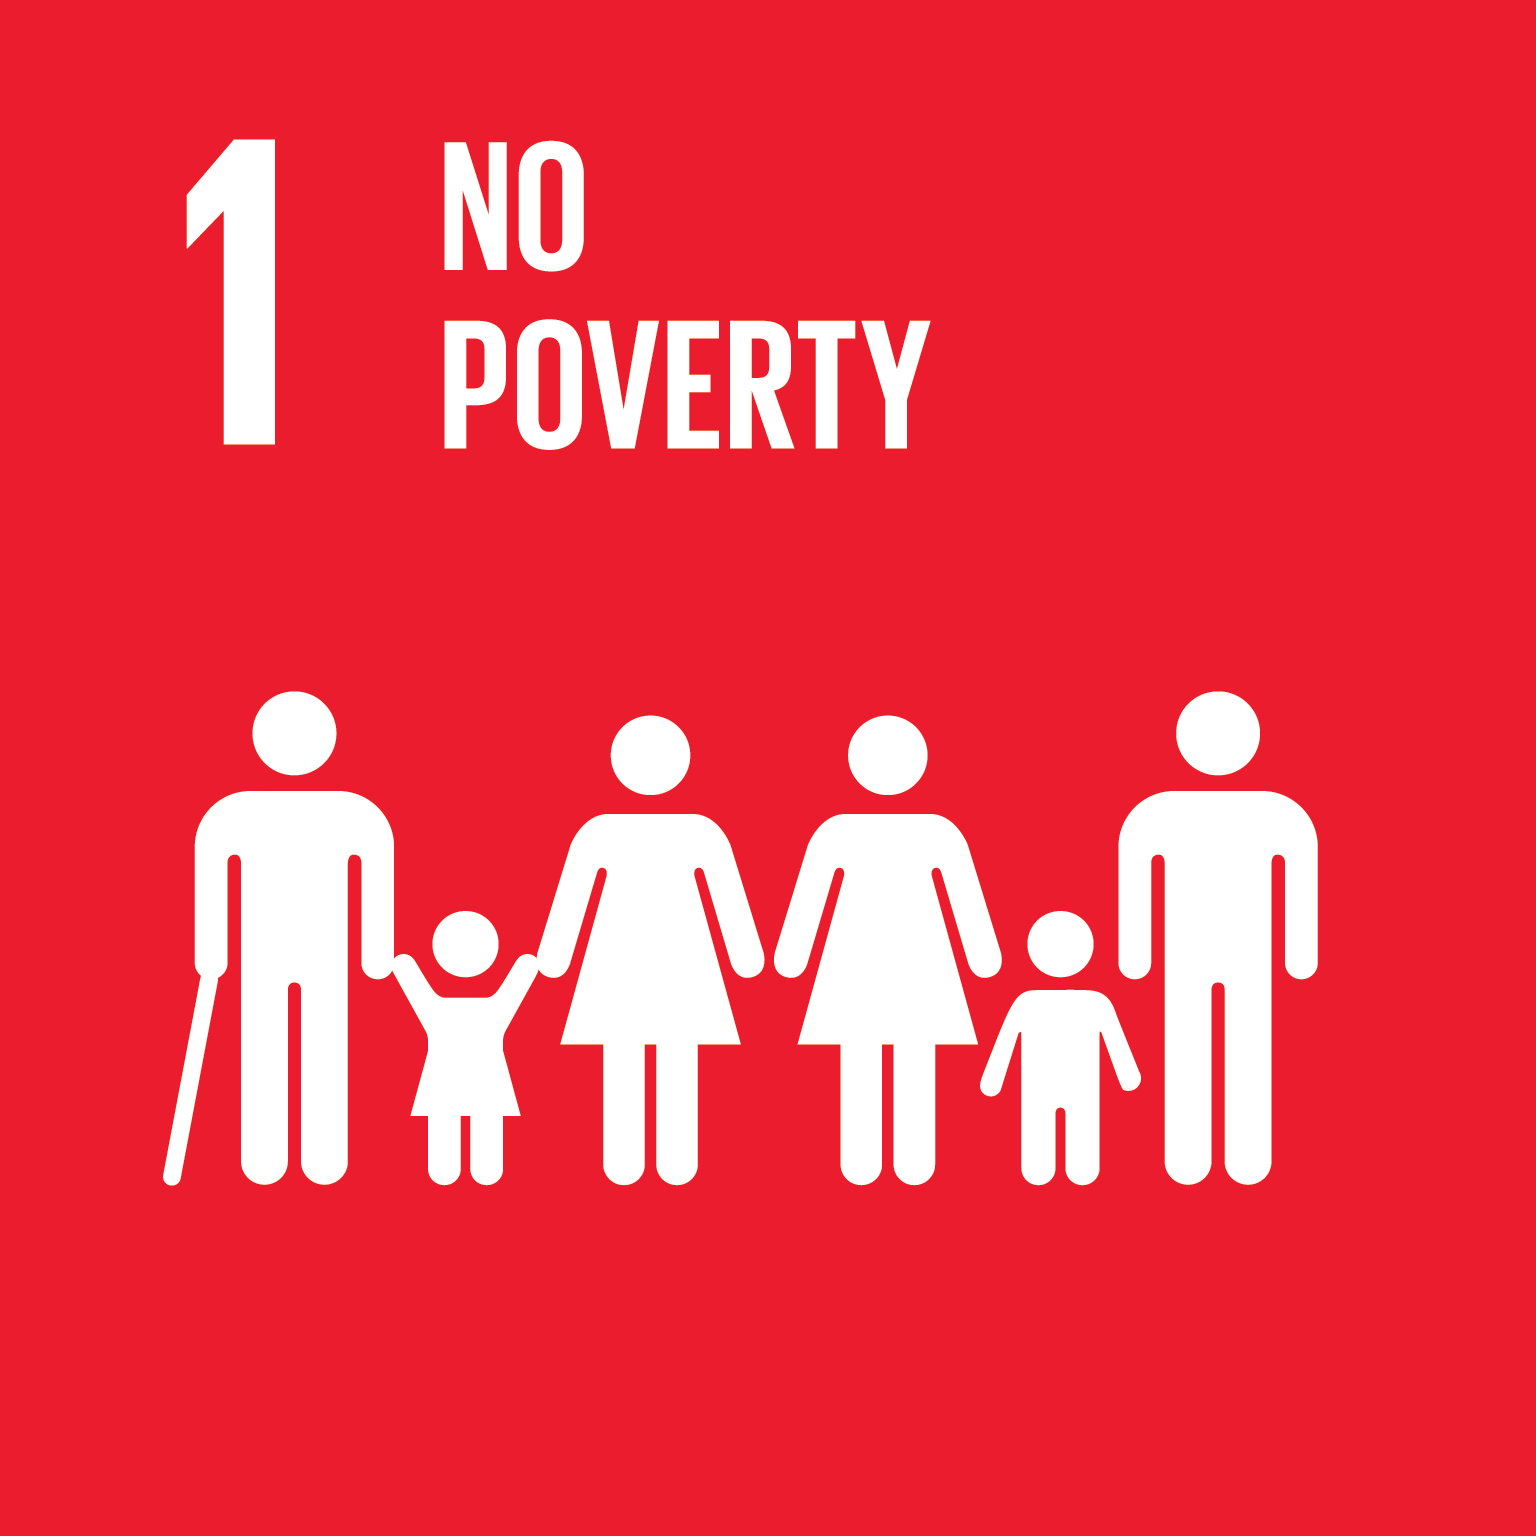 U.N. SDG goal 1, no poverty